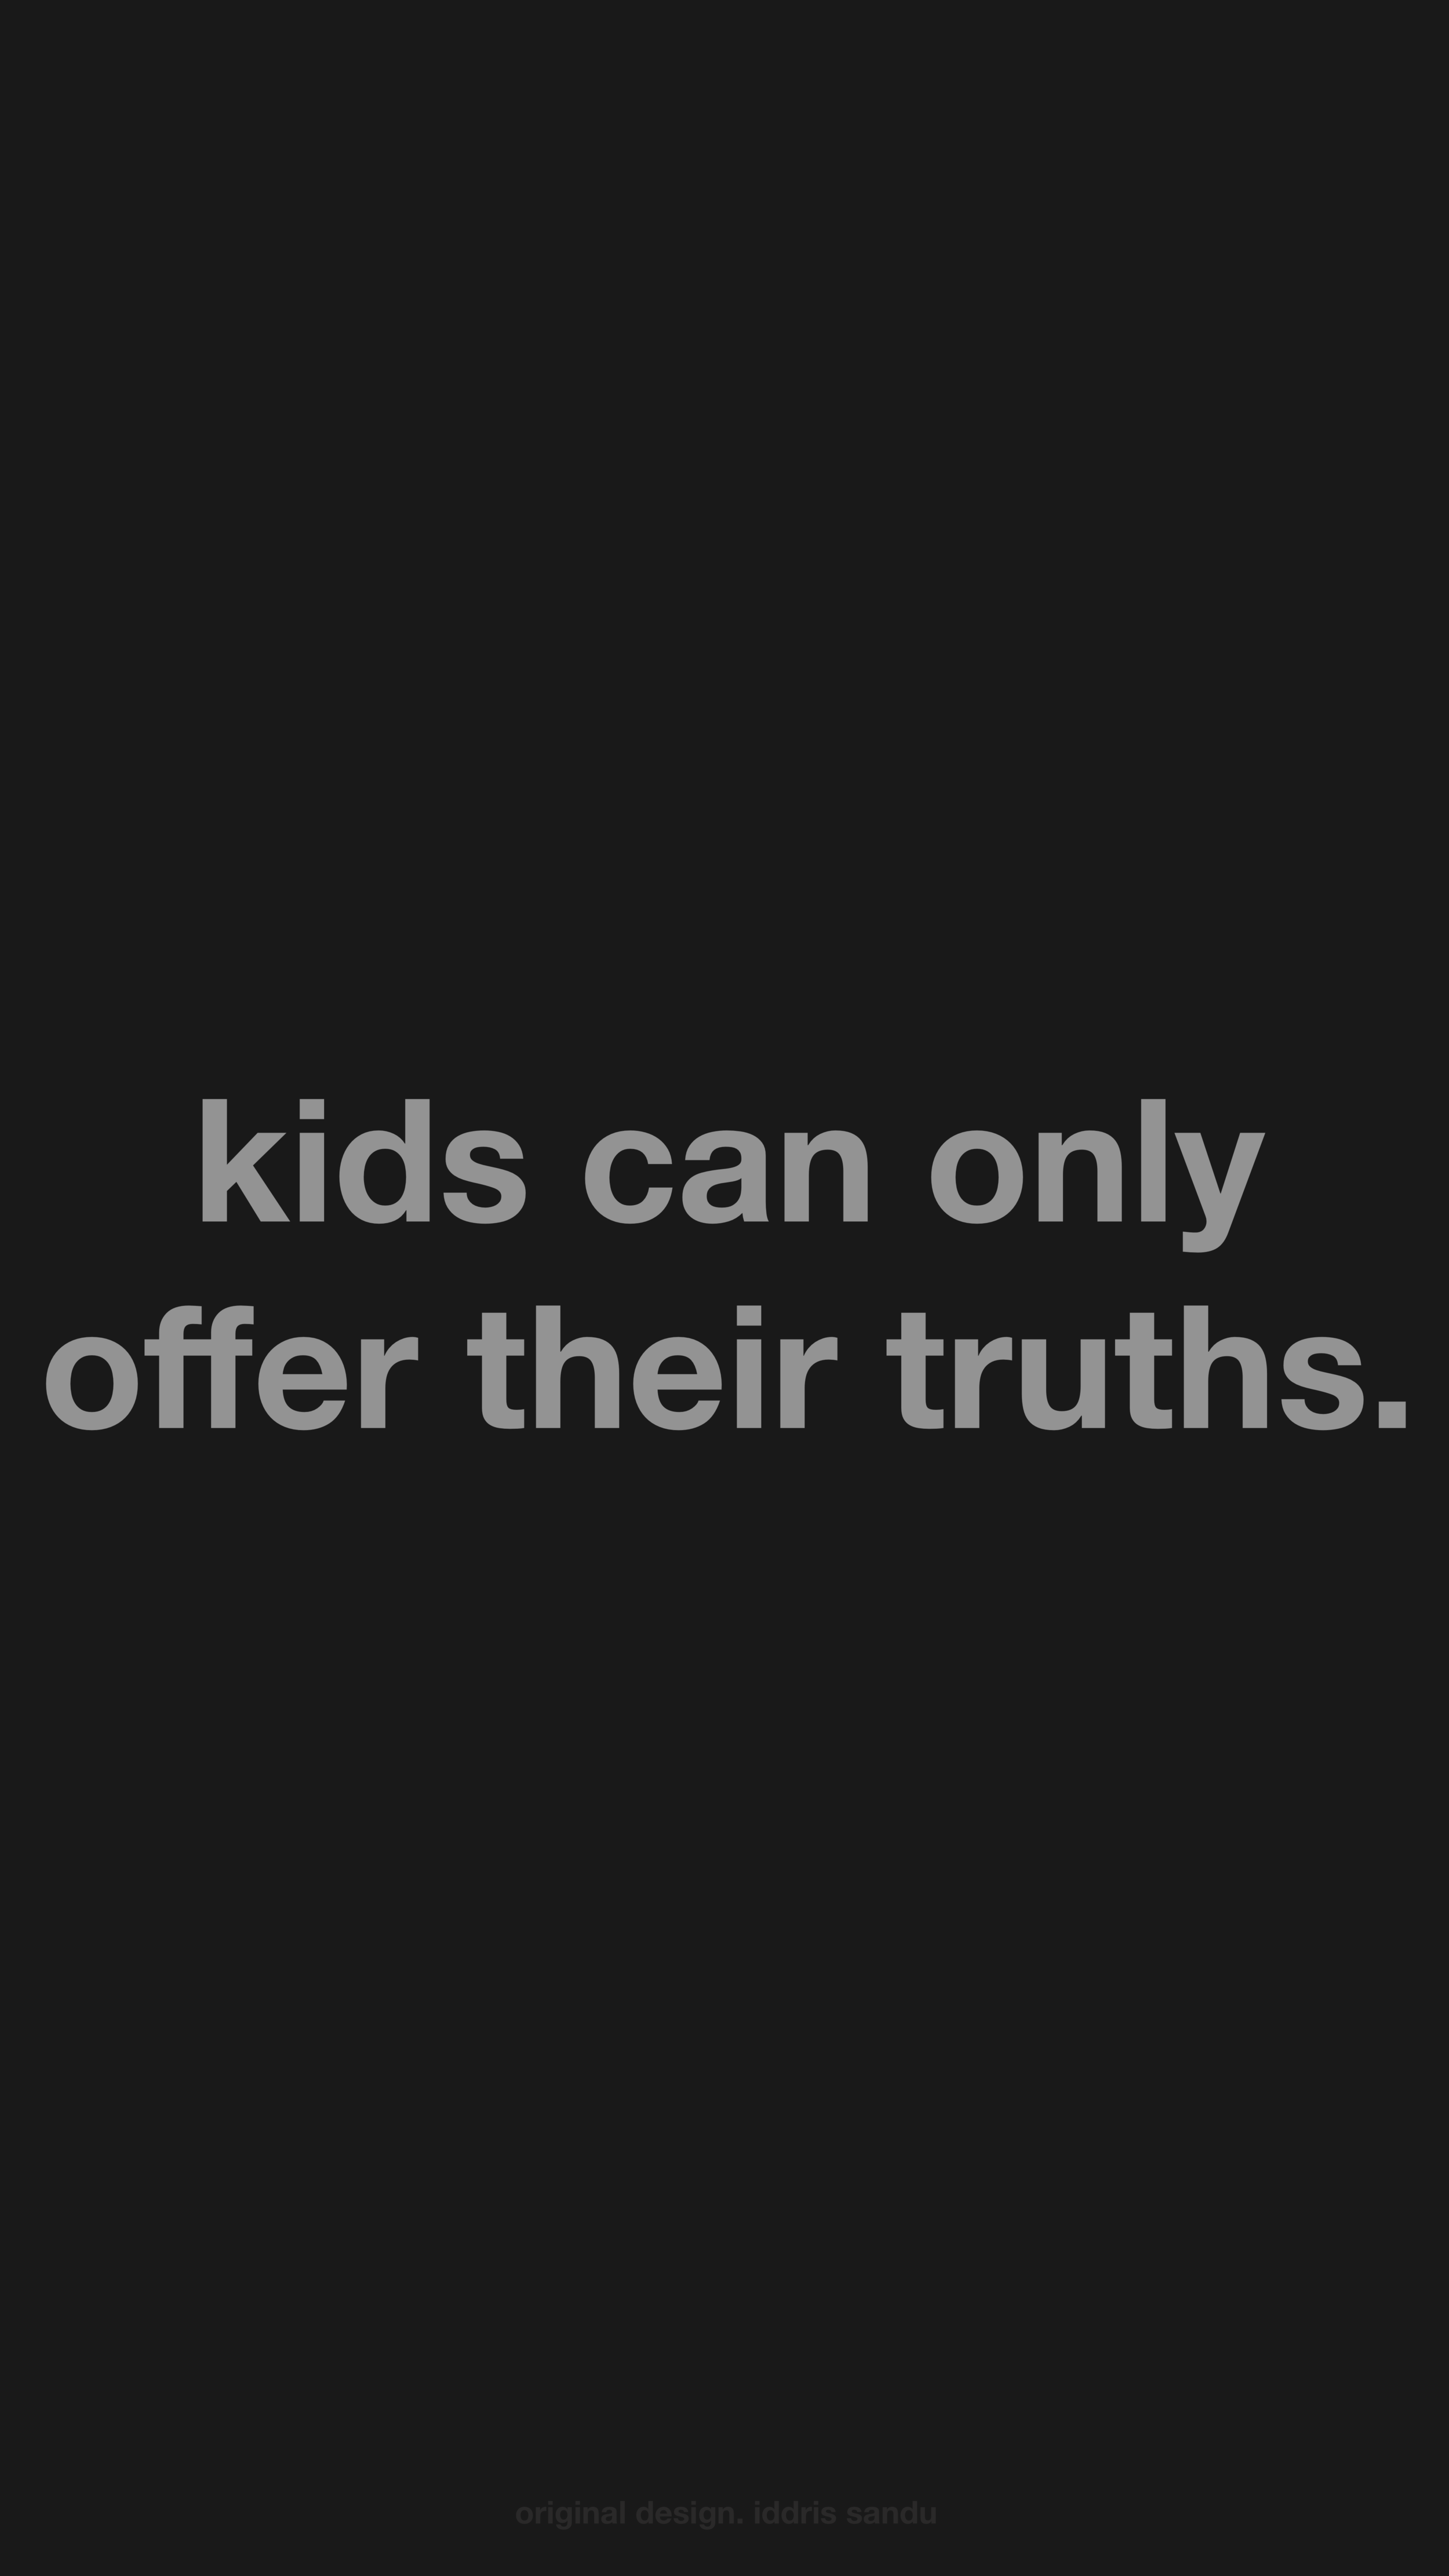 kids can only offer their truths (mobile).png